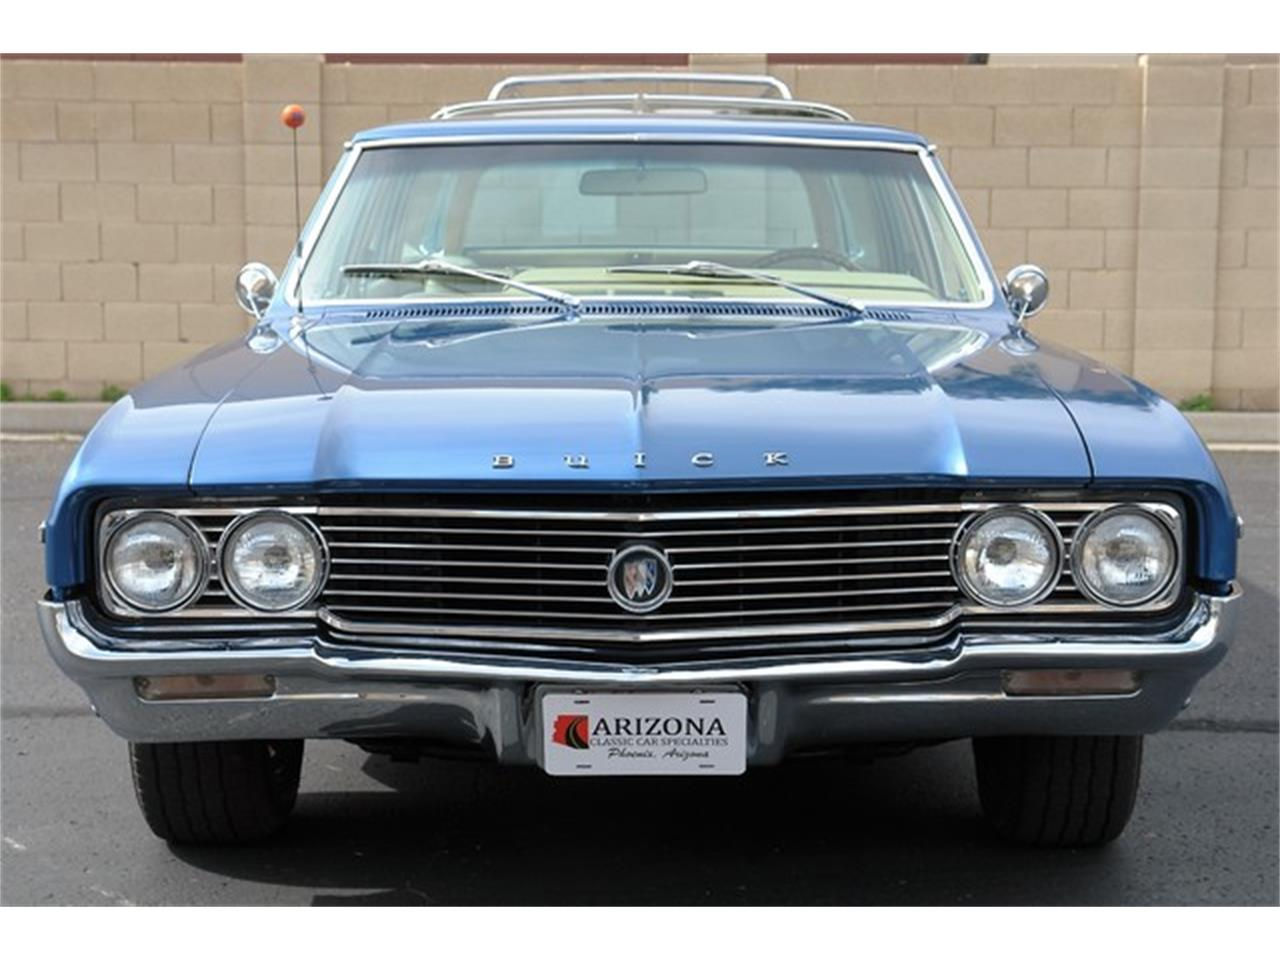 Large Picture of Classic 1964 Buick Skylark Offered by Arizona Classic Car Sales - LRZX